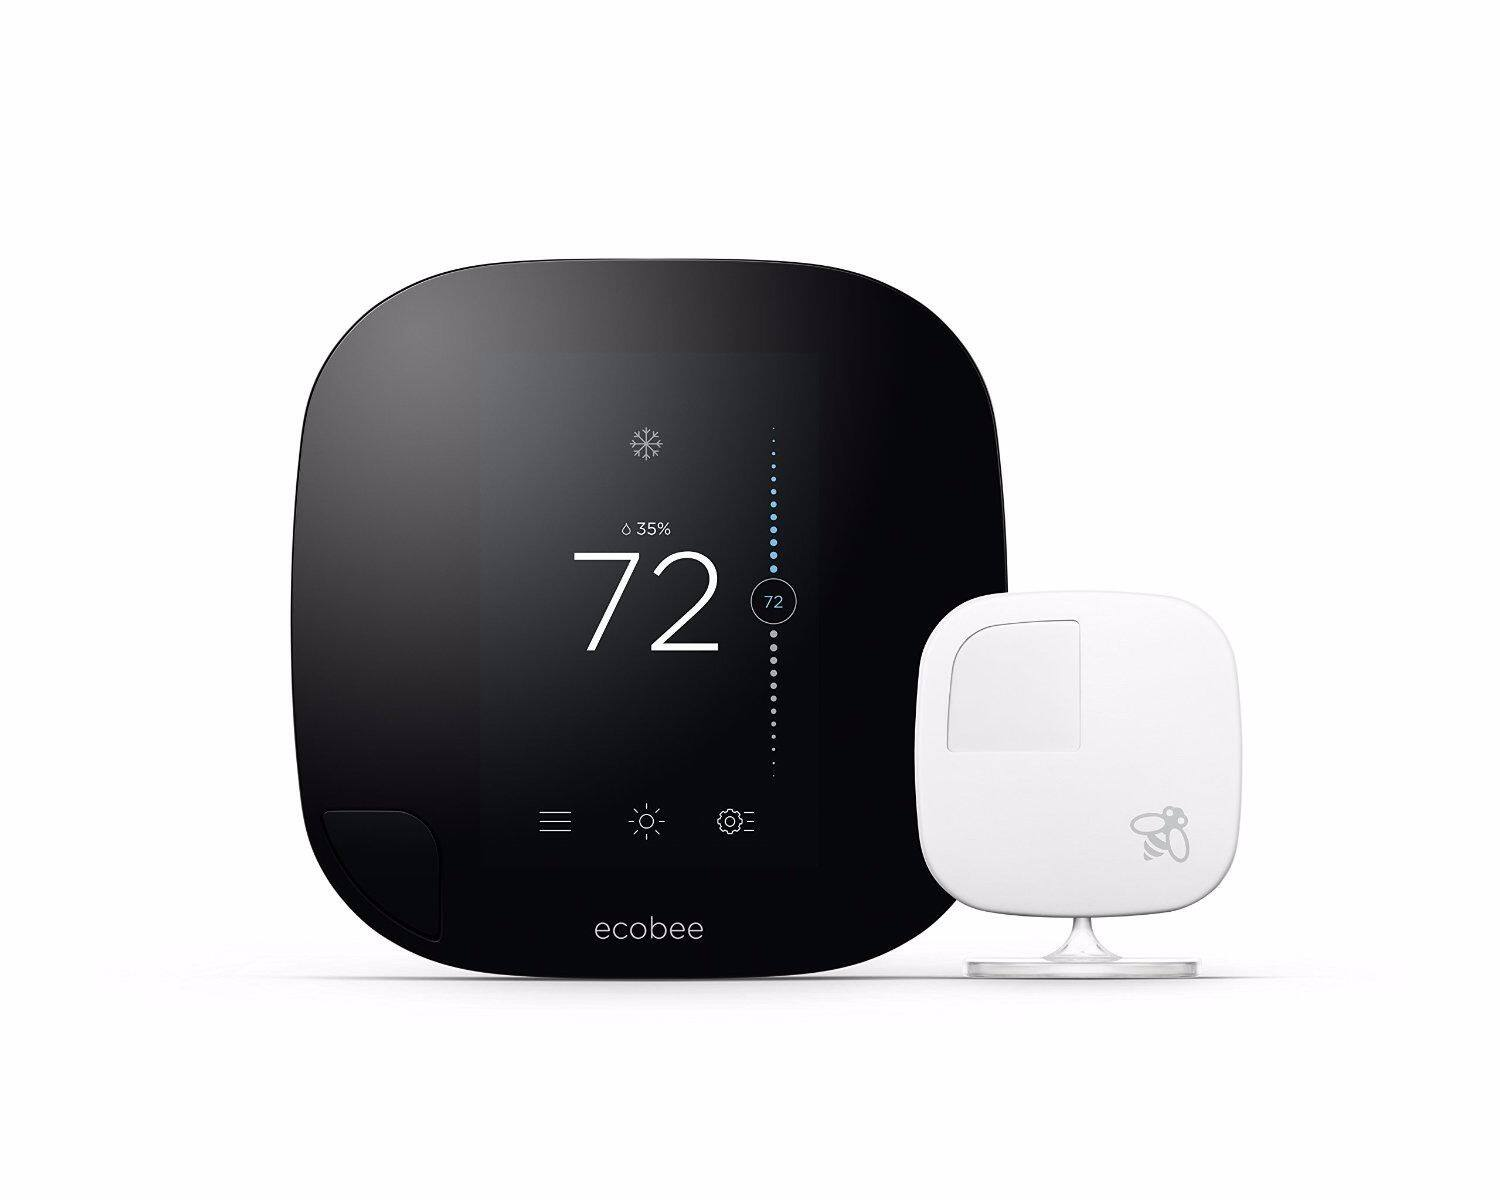 ecobee3 Smarter Wi-Fi Thermostat with Remote Sensor $190 + Free Shipping! (eBay Daily Deal)